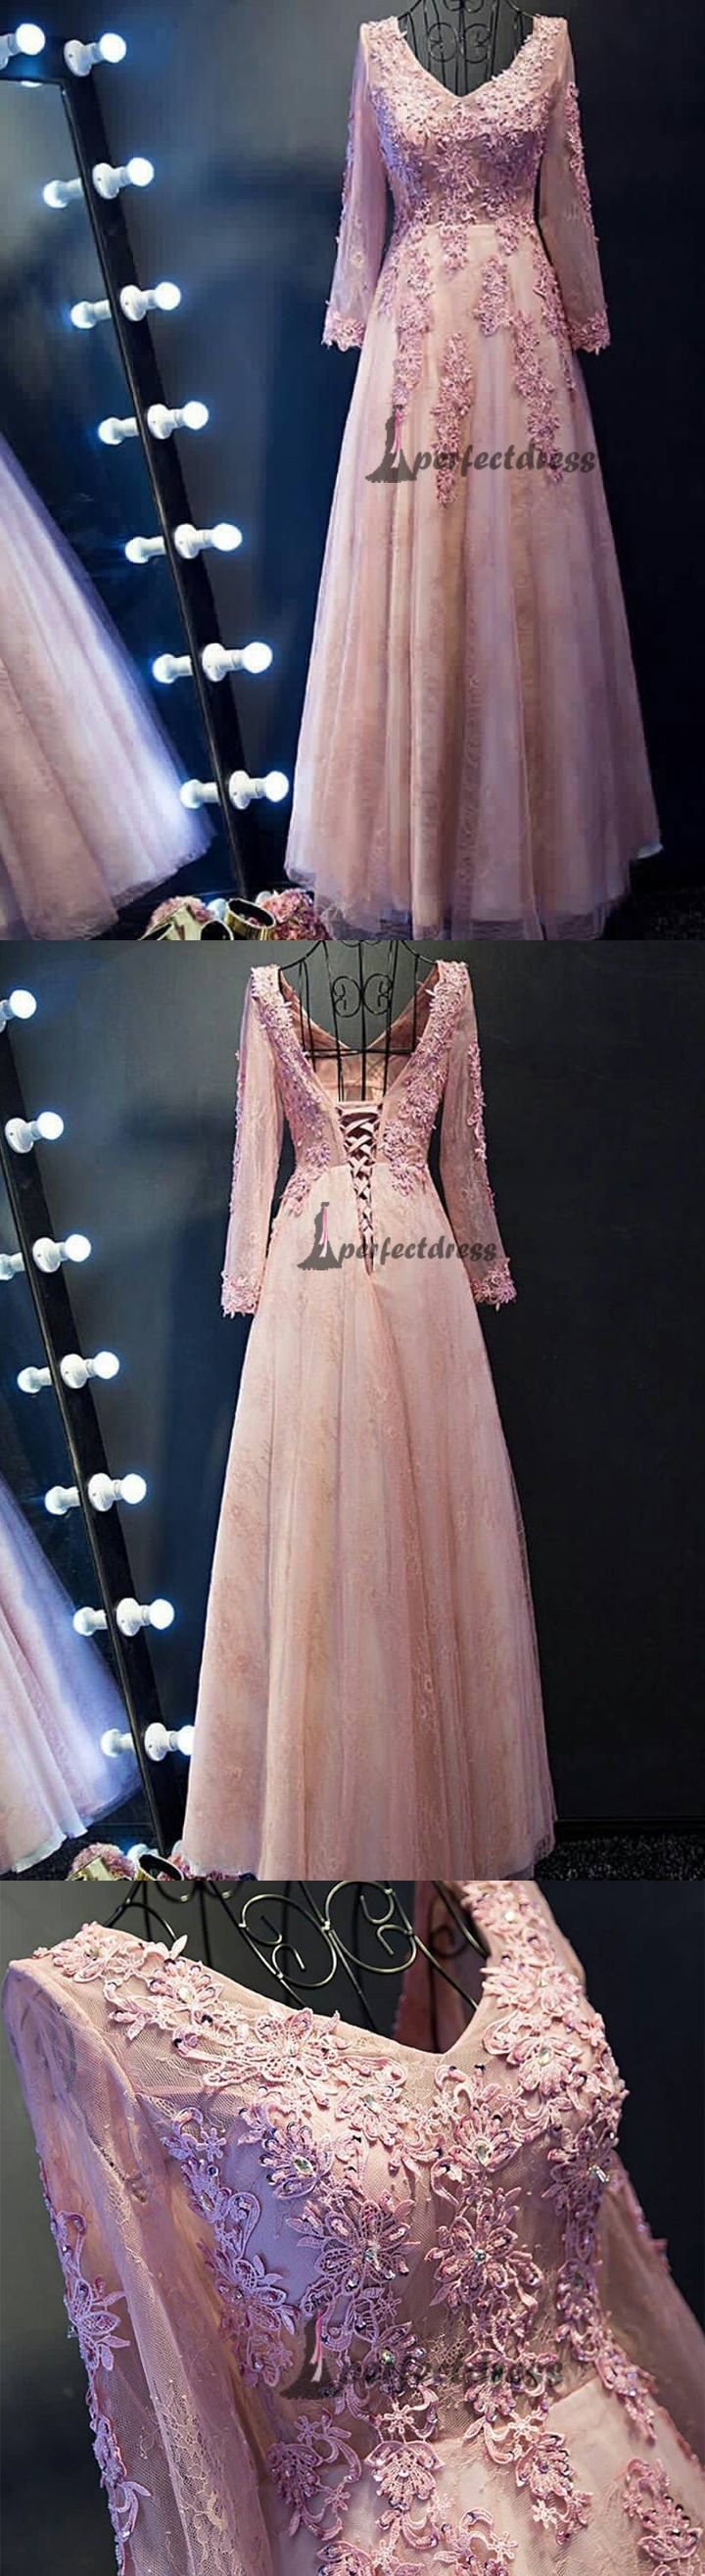 Chic vneck prom dresses sexy long lace prom dressespd